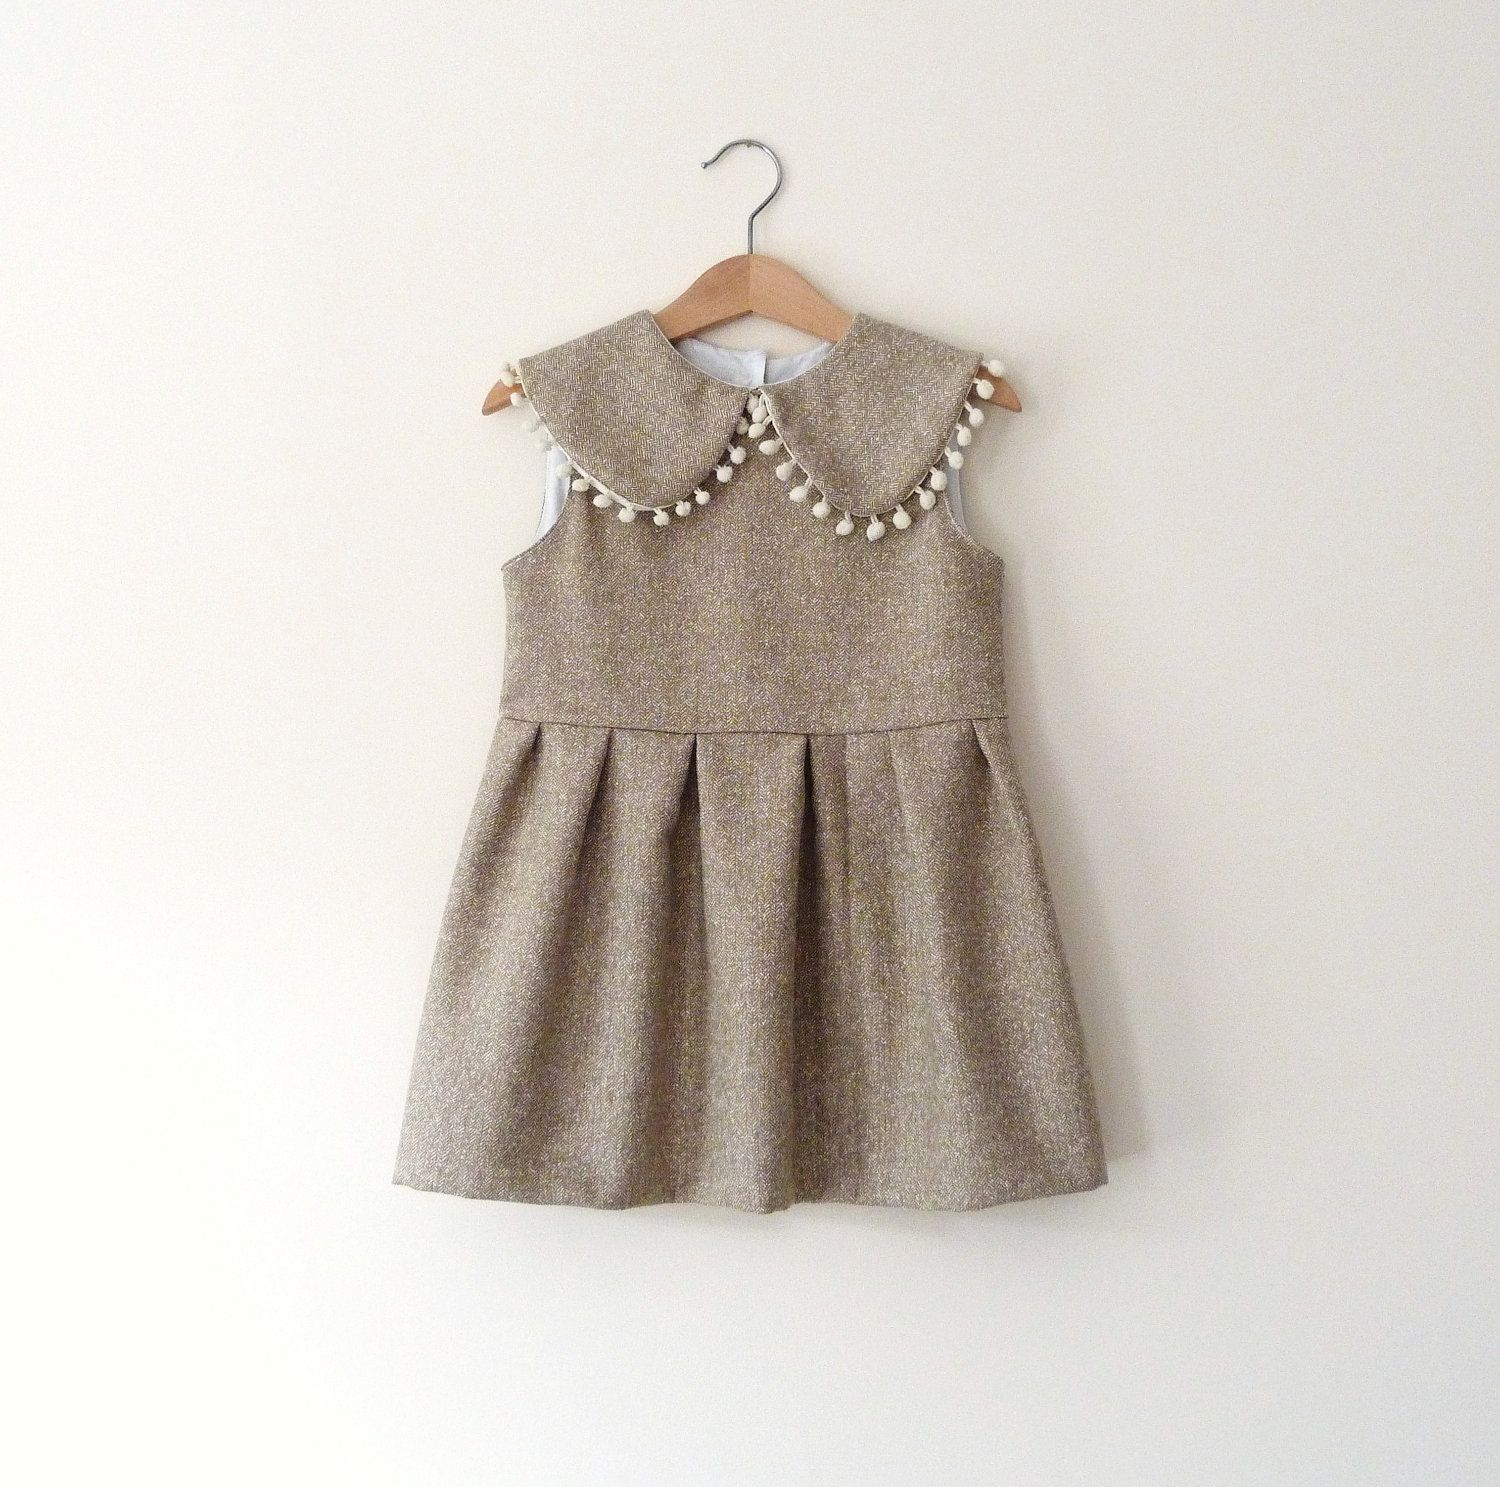 Fall Wool Dress in Sand With Peter Pan Collar and Pom Poms $62 00